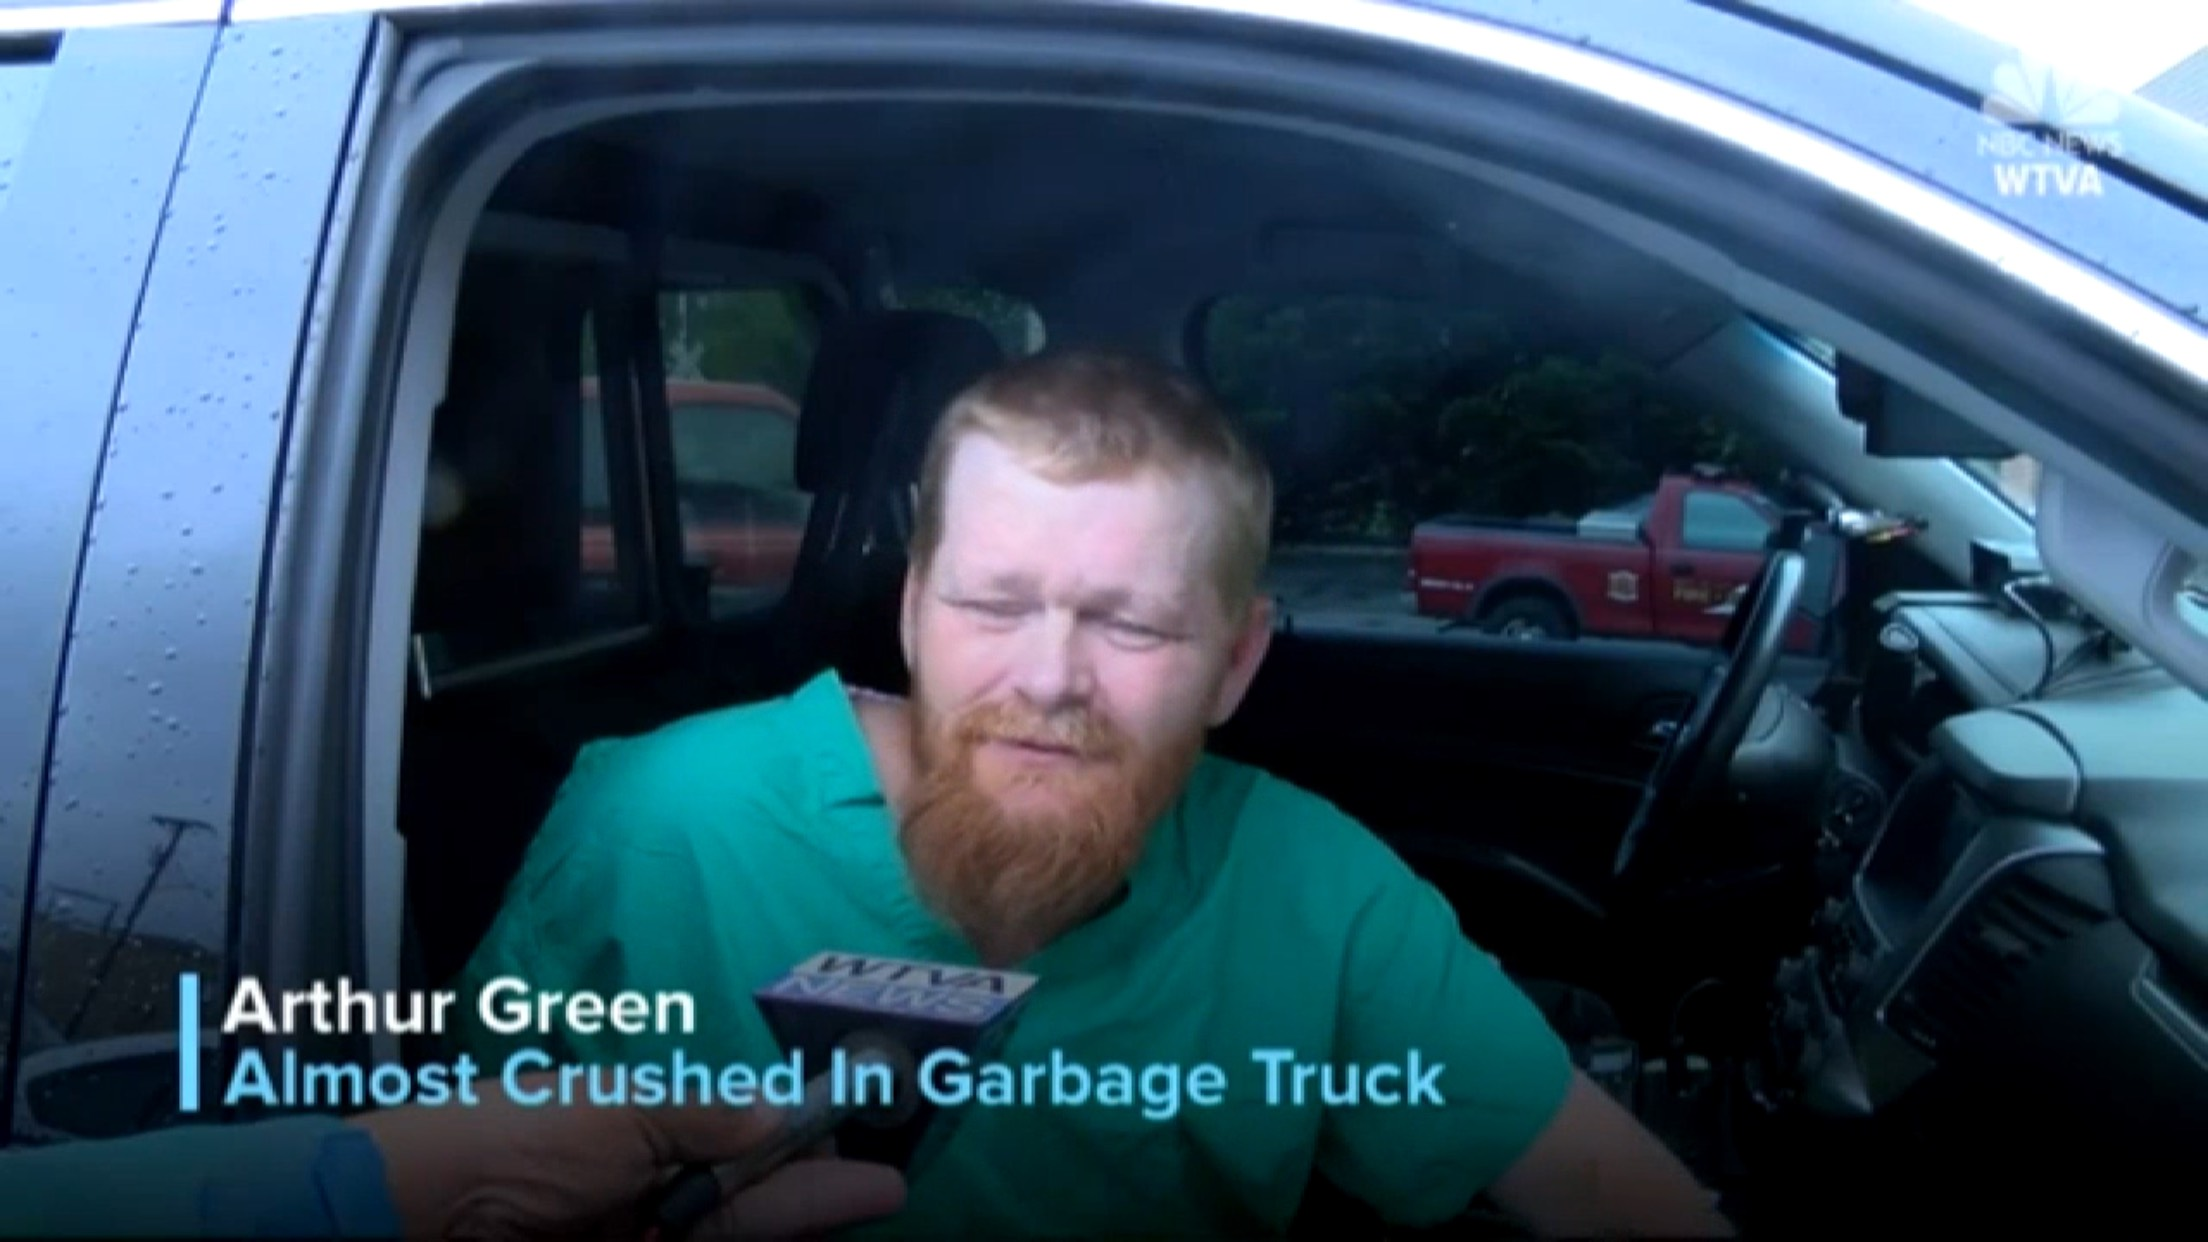 Arthur Green: Almost Crushed In Garbage Truck